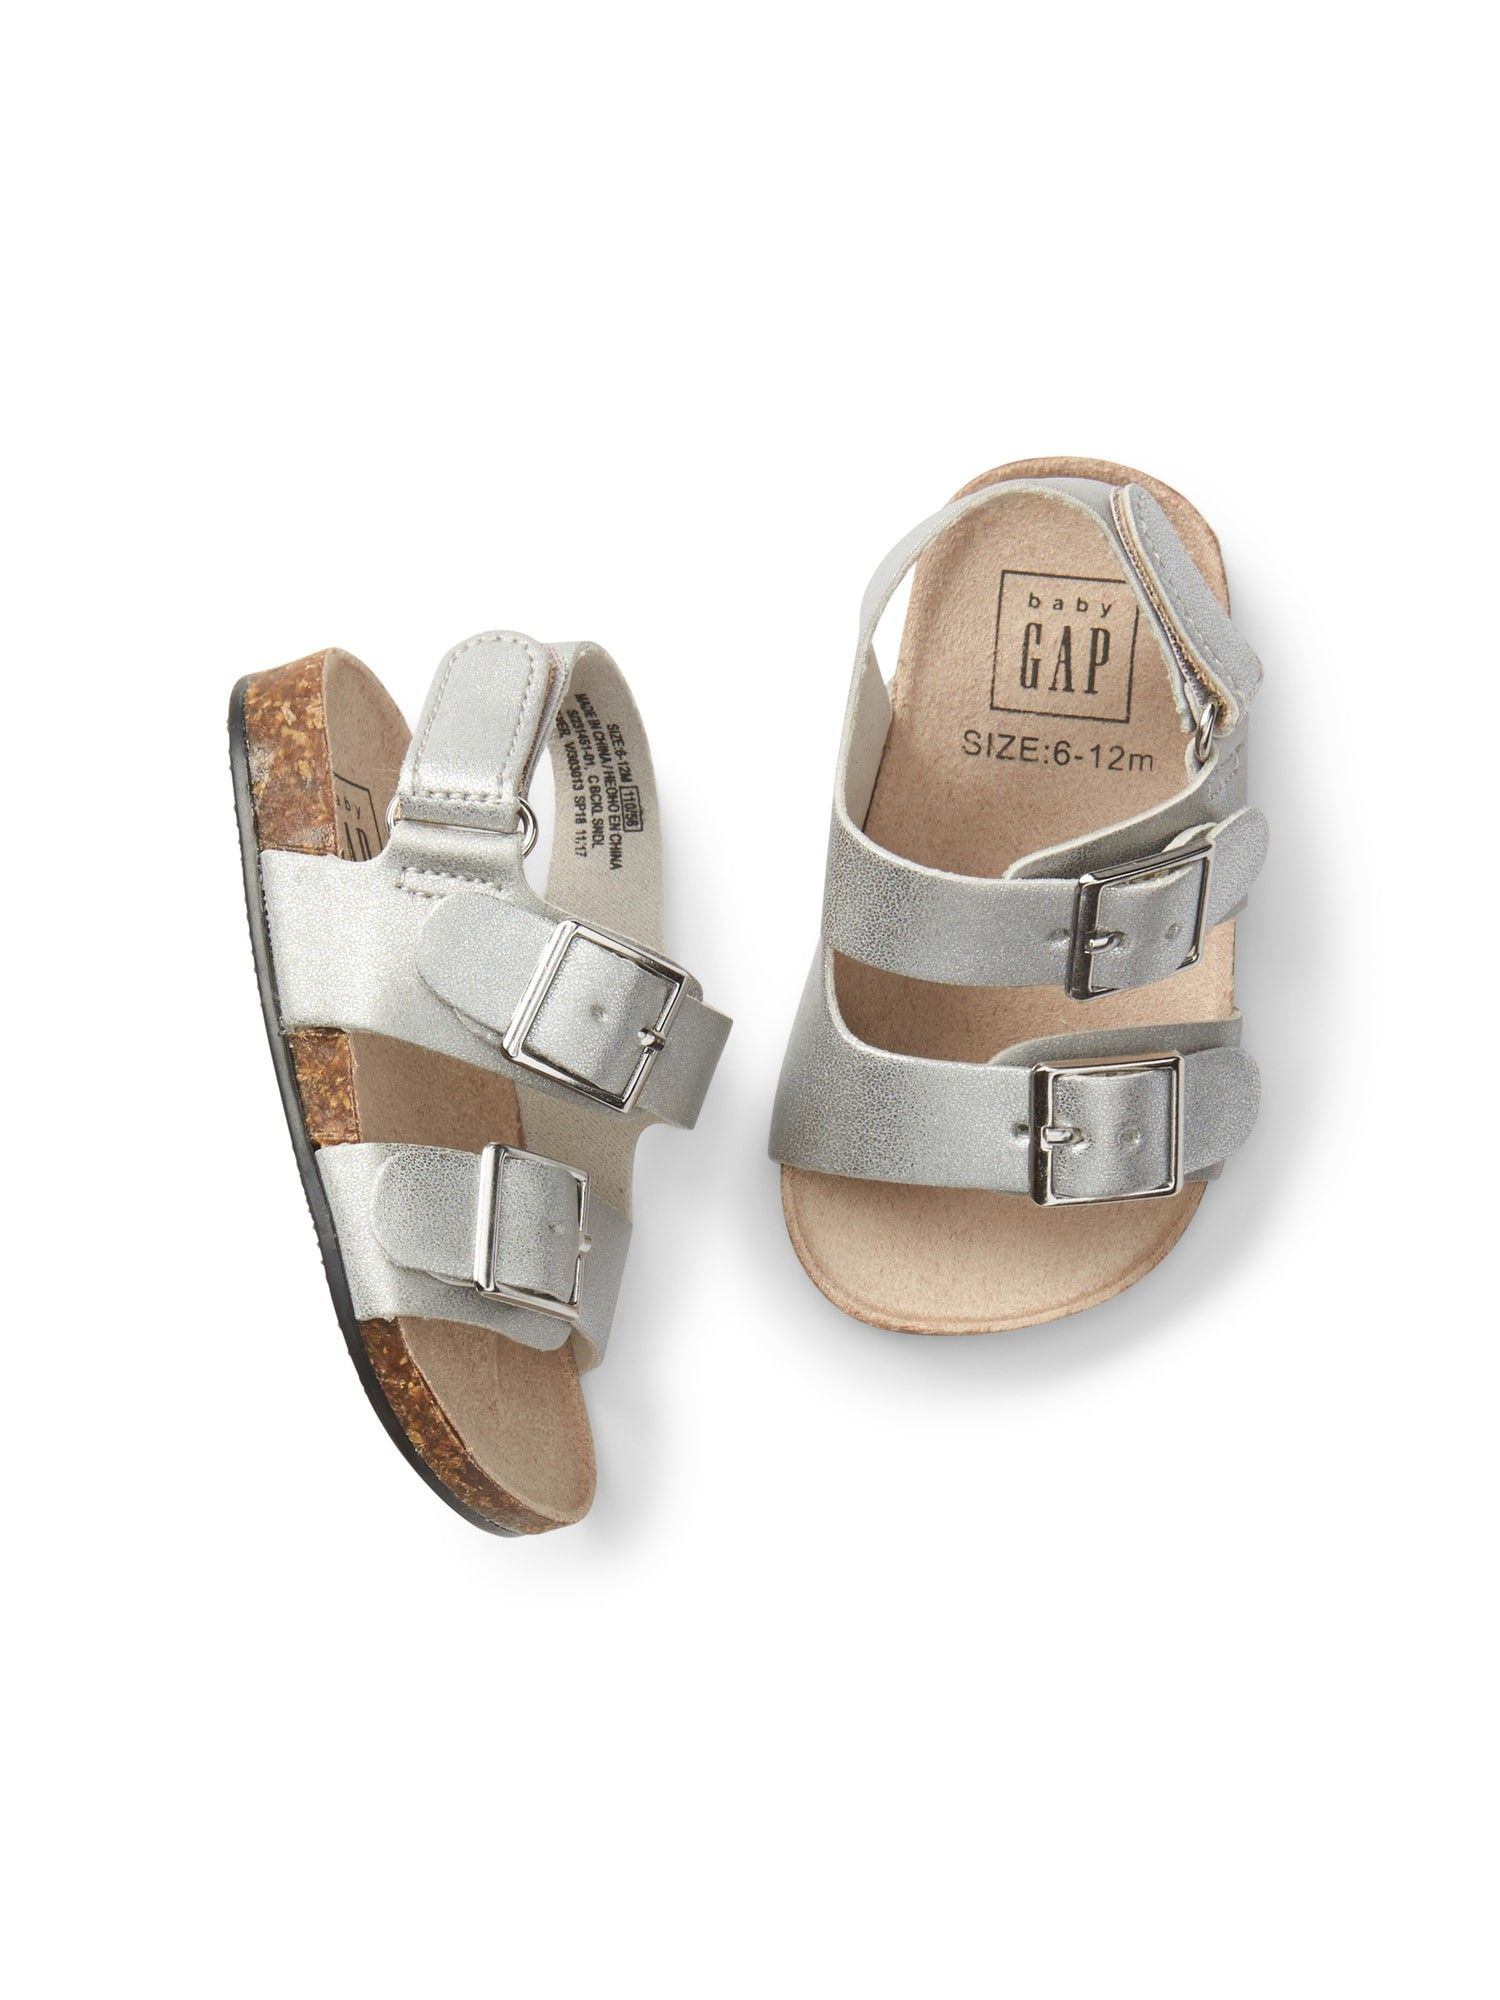 Gap Baby Double Buckle Sandals Silver 0 3 M